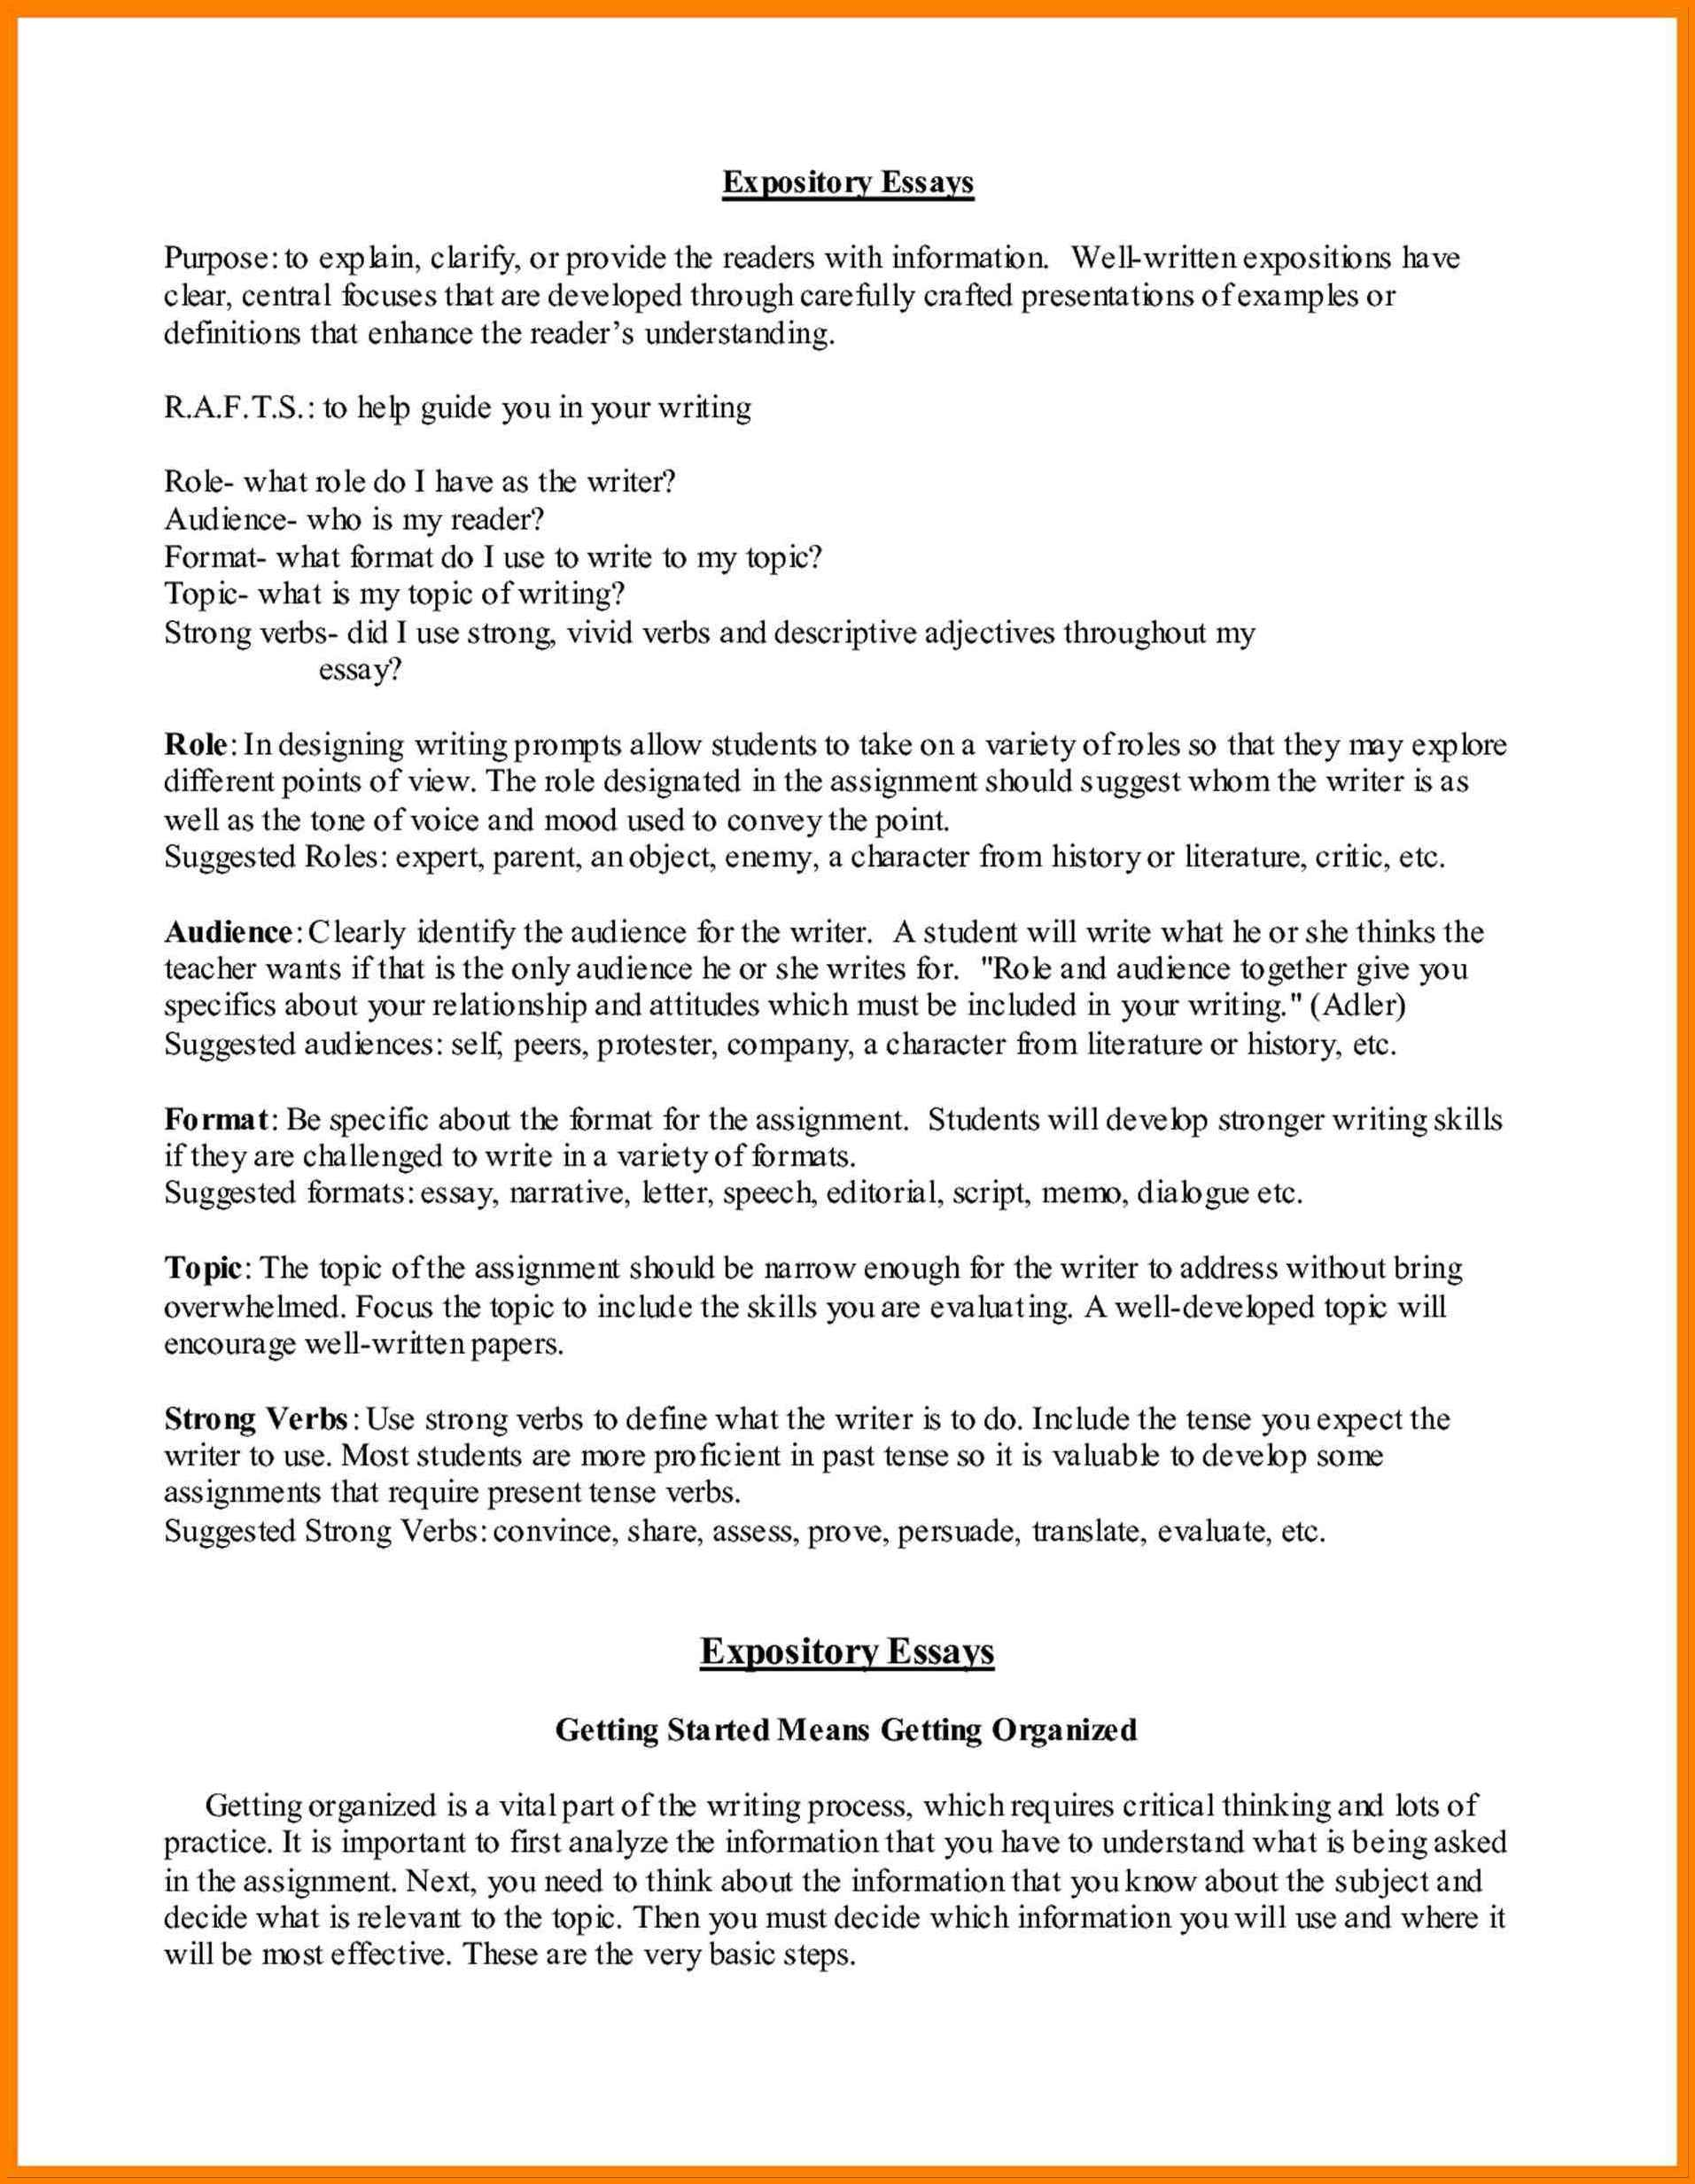 007 Editorial Essaymples For High School Highschool Students With Expected Salarymple Sample Sat Prompts Essays Need Help My What To Say In Email Imposing Essay Examples Short About Travel Full